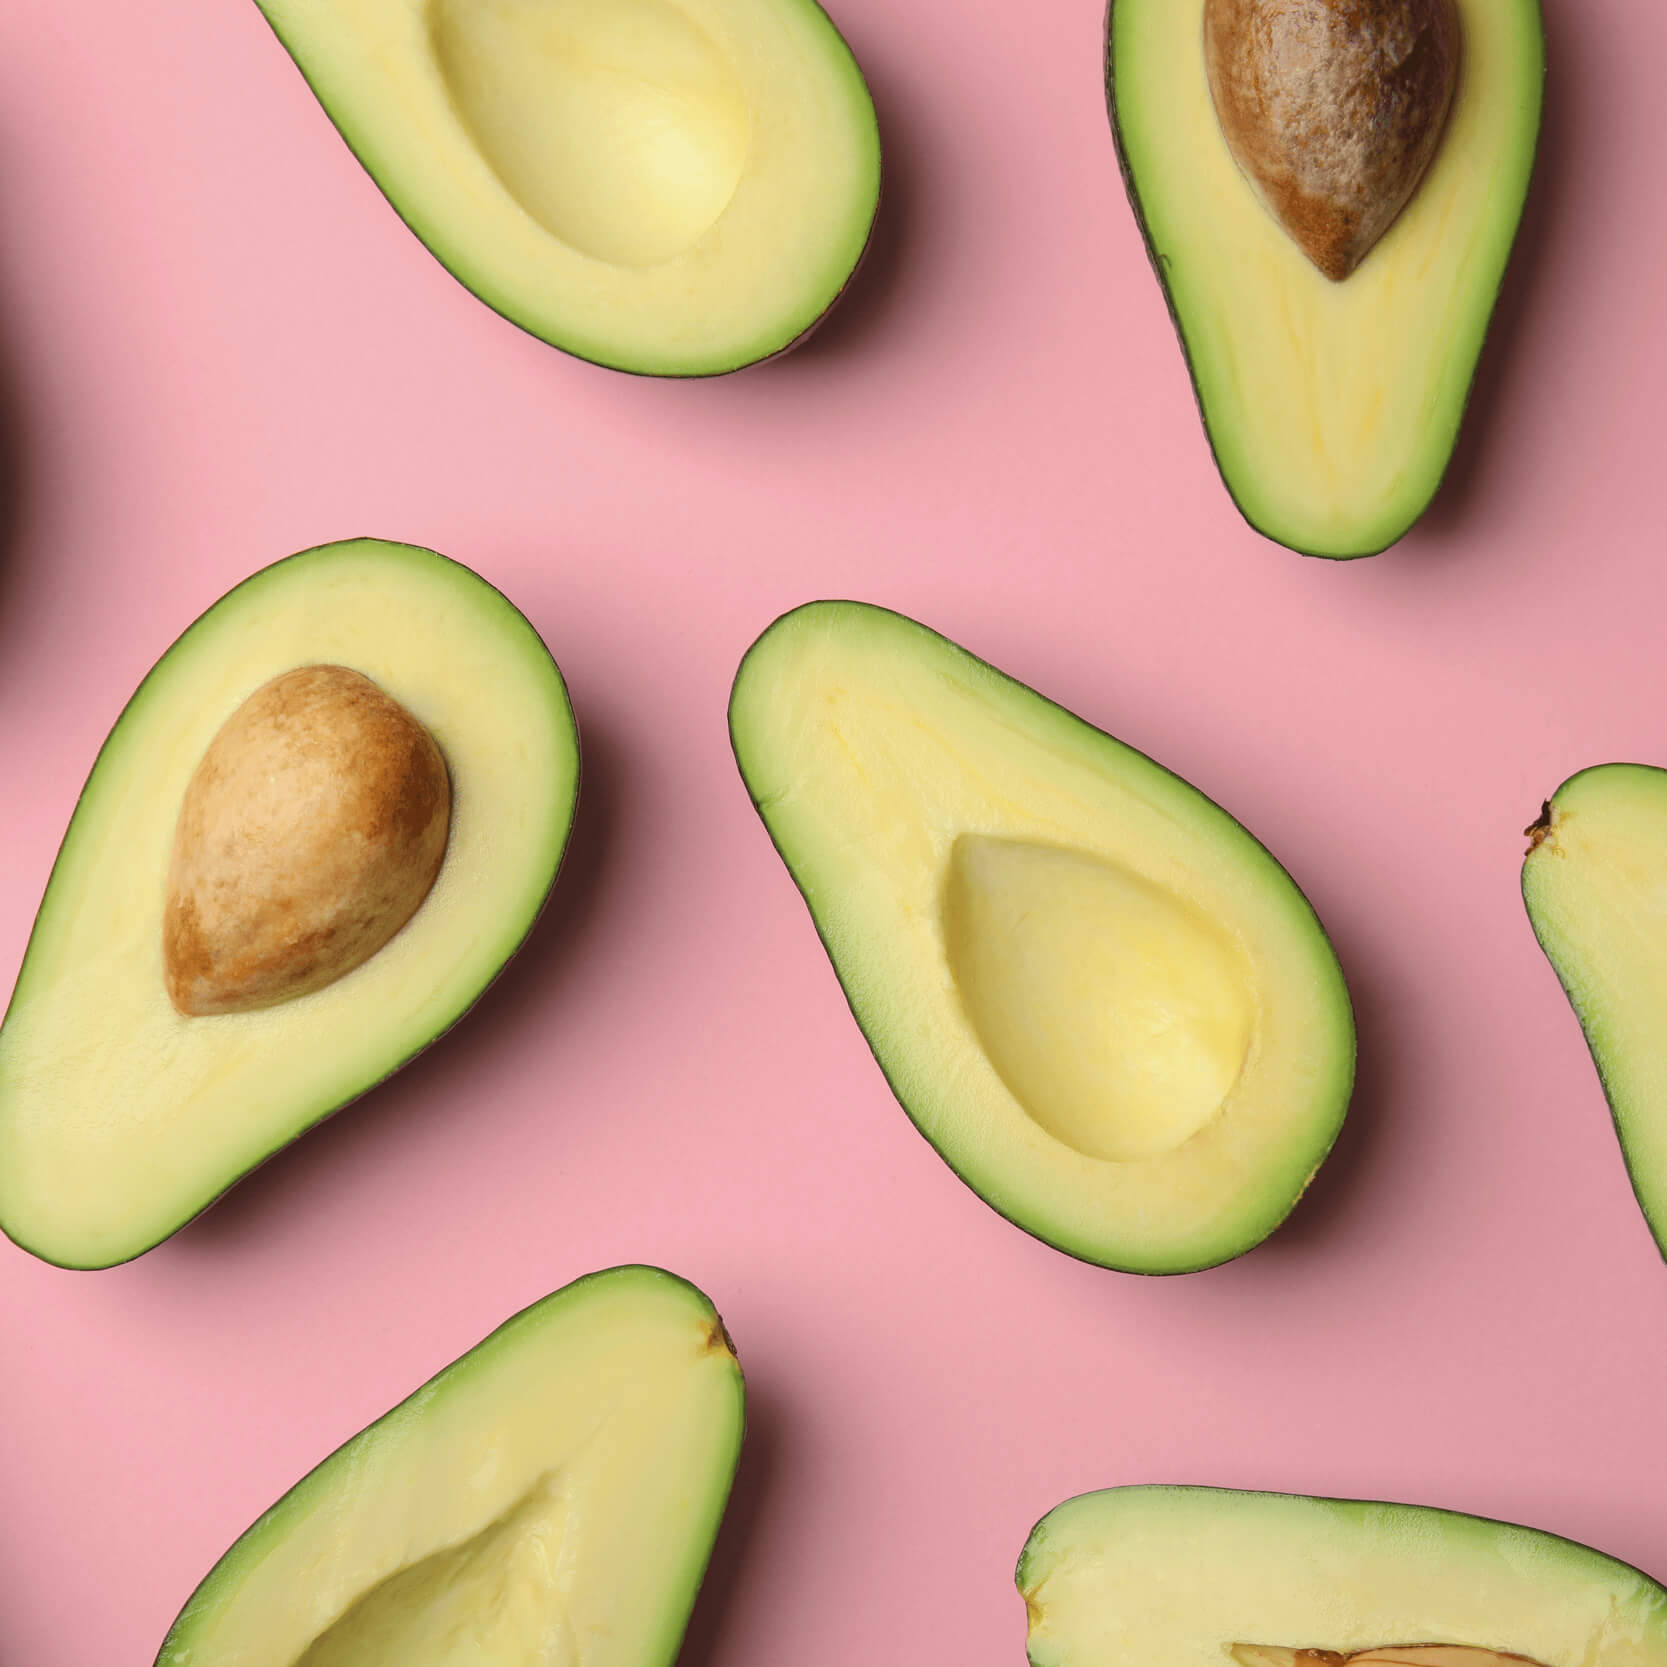 7 Simple Tips to Healthy Eating During and After COVID-19 - Avocado